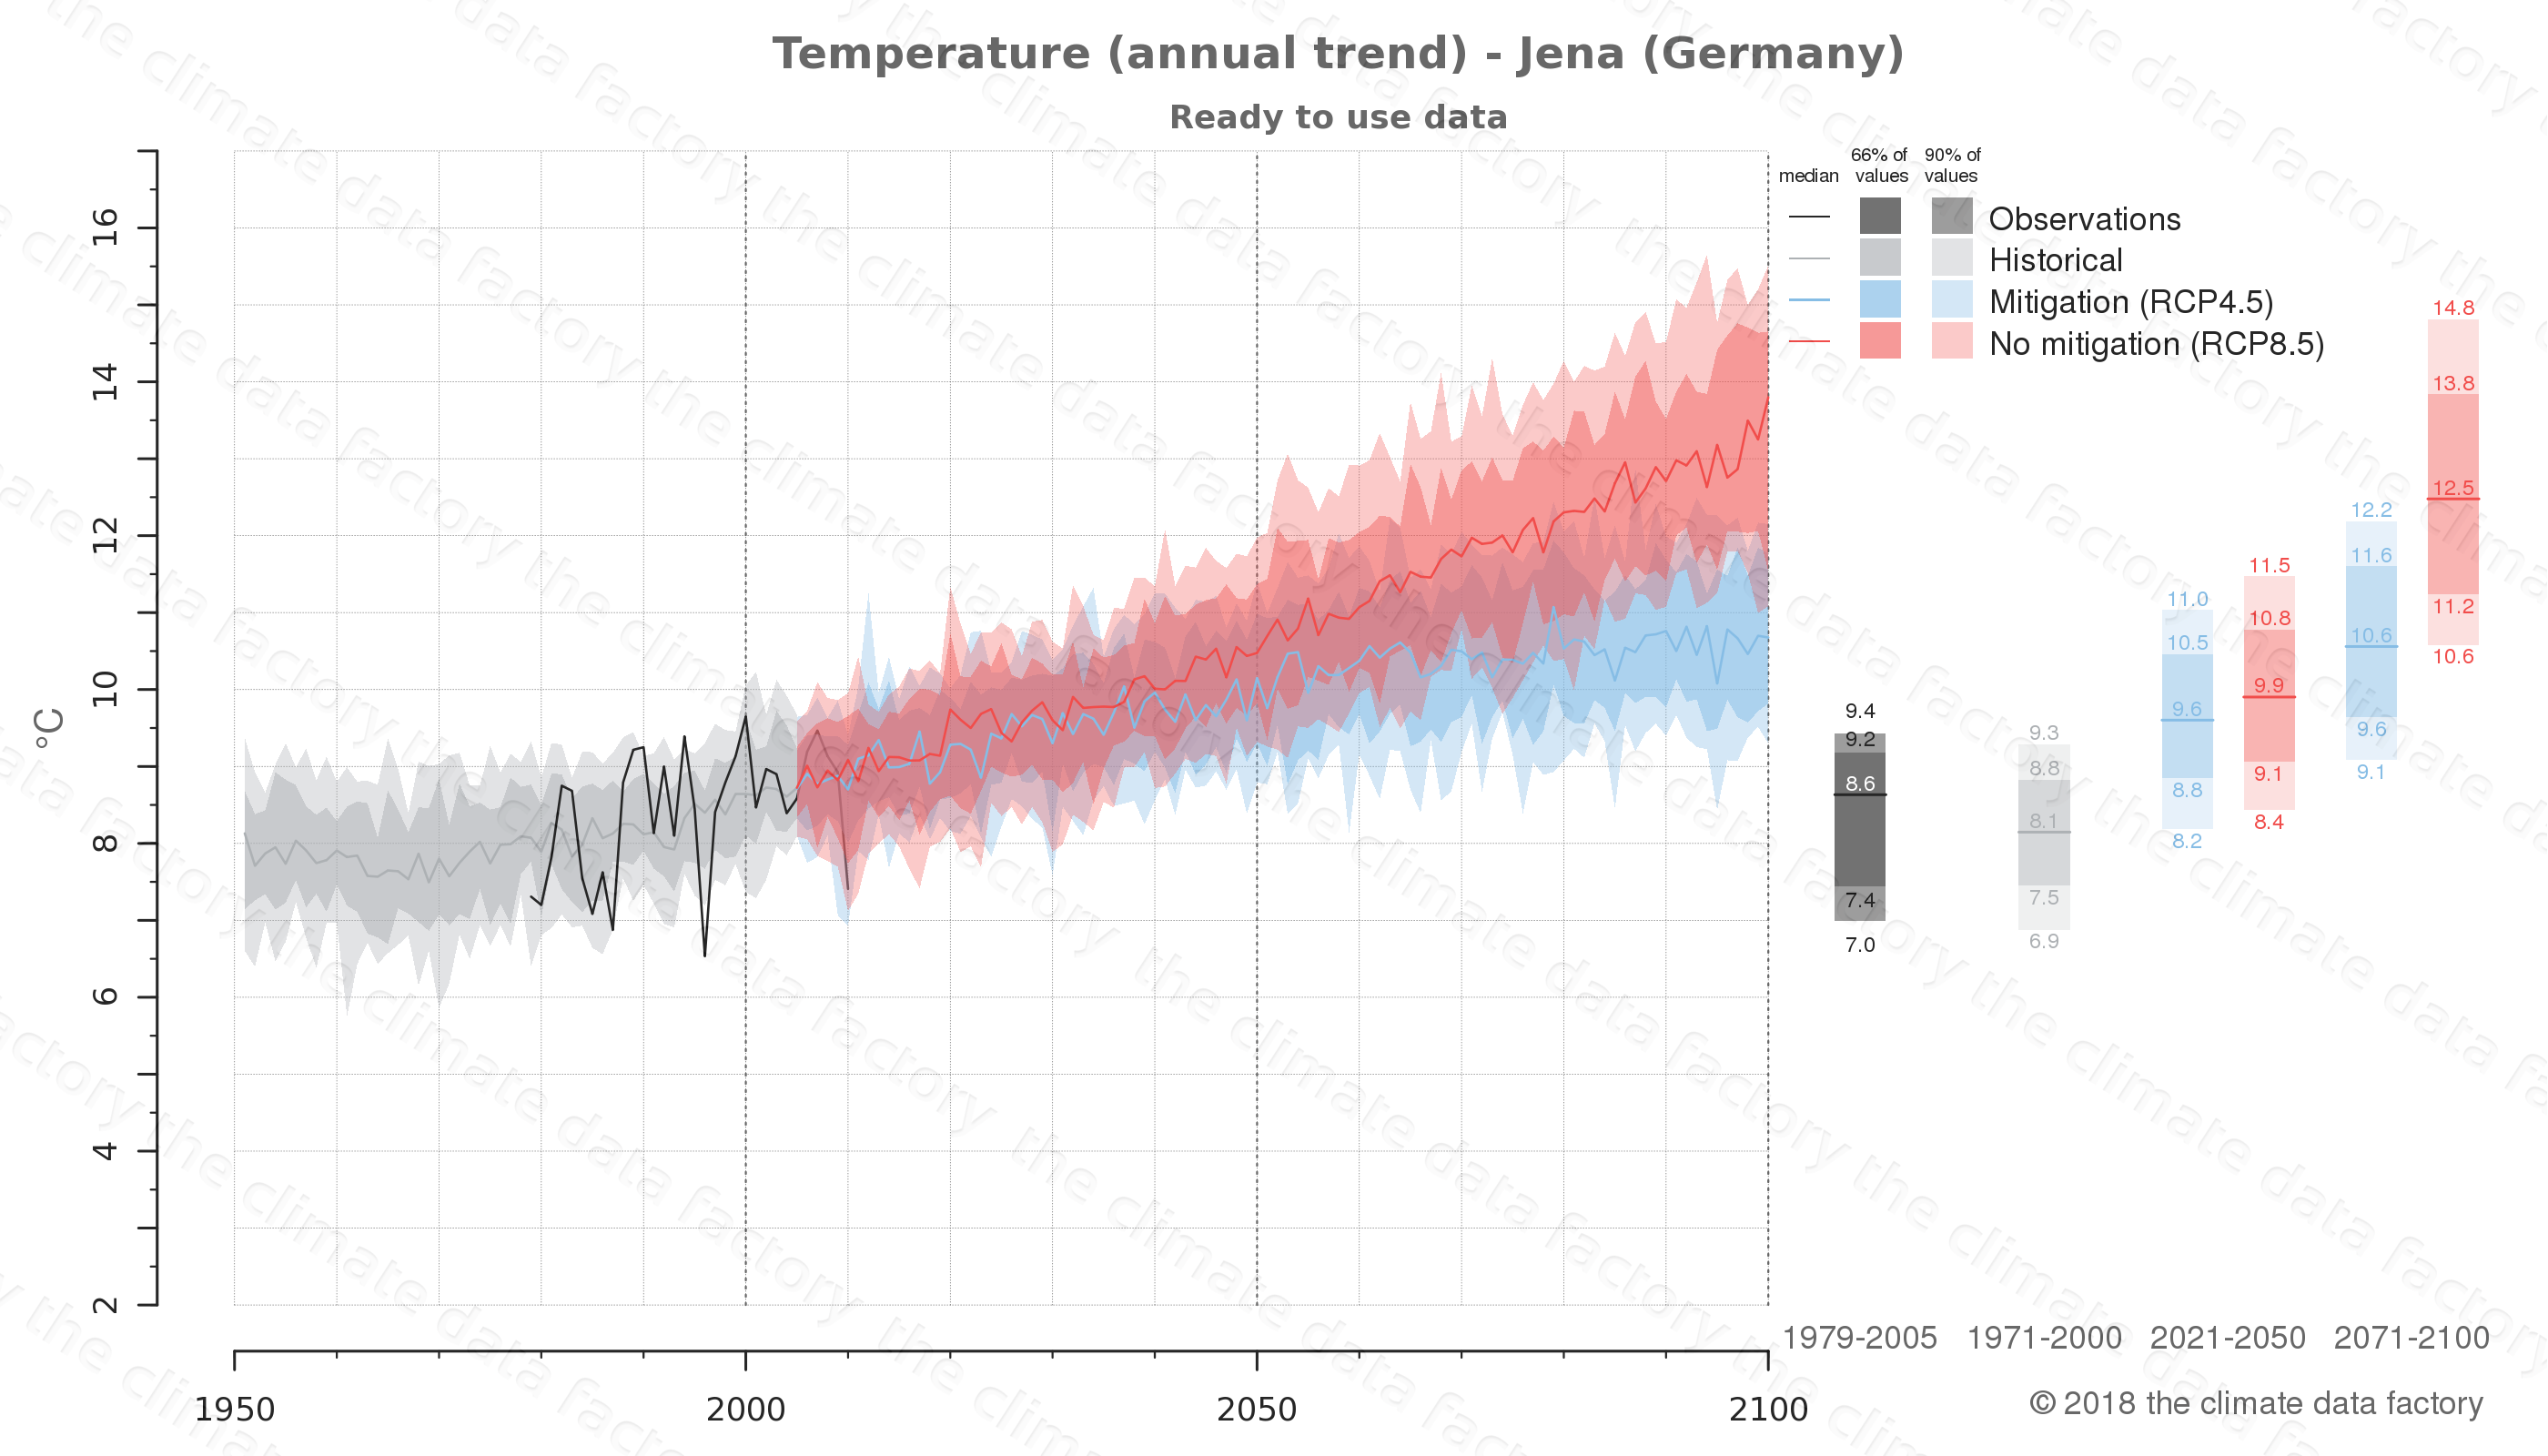 climate change data policy adaptation climate graph city data temperature jena germany